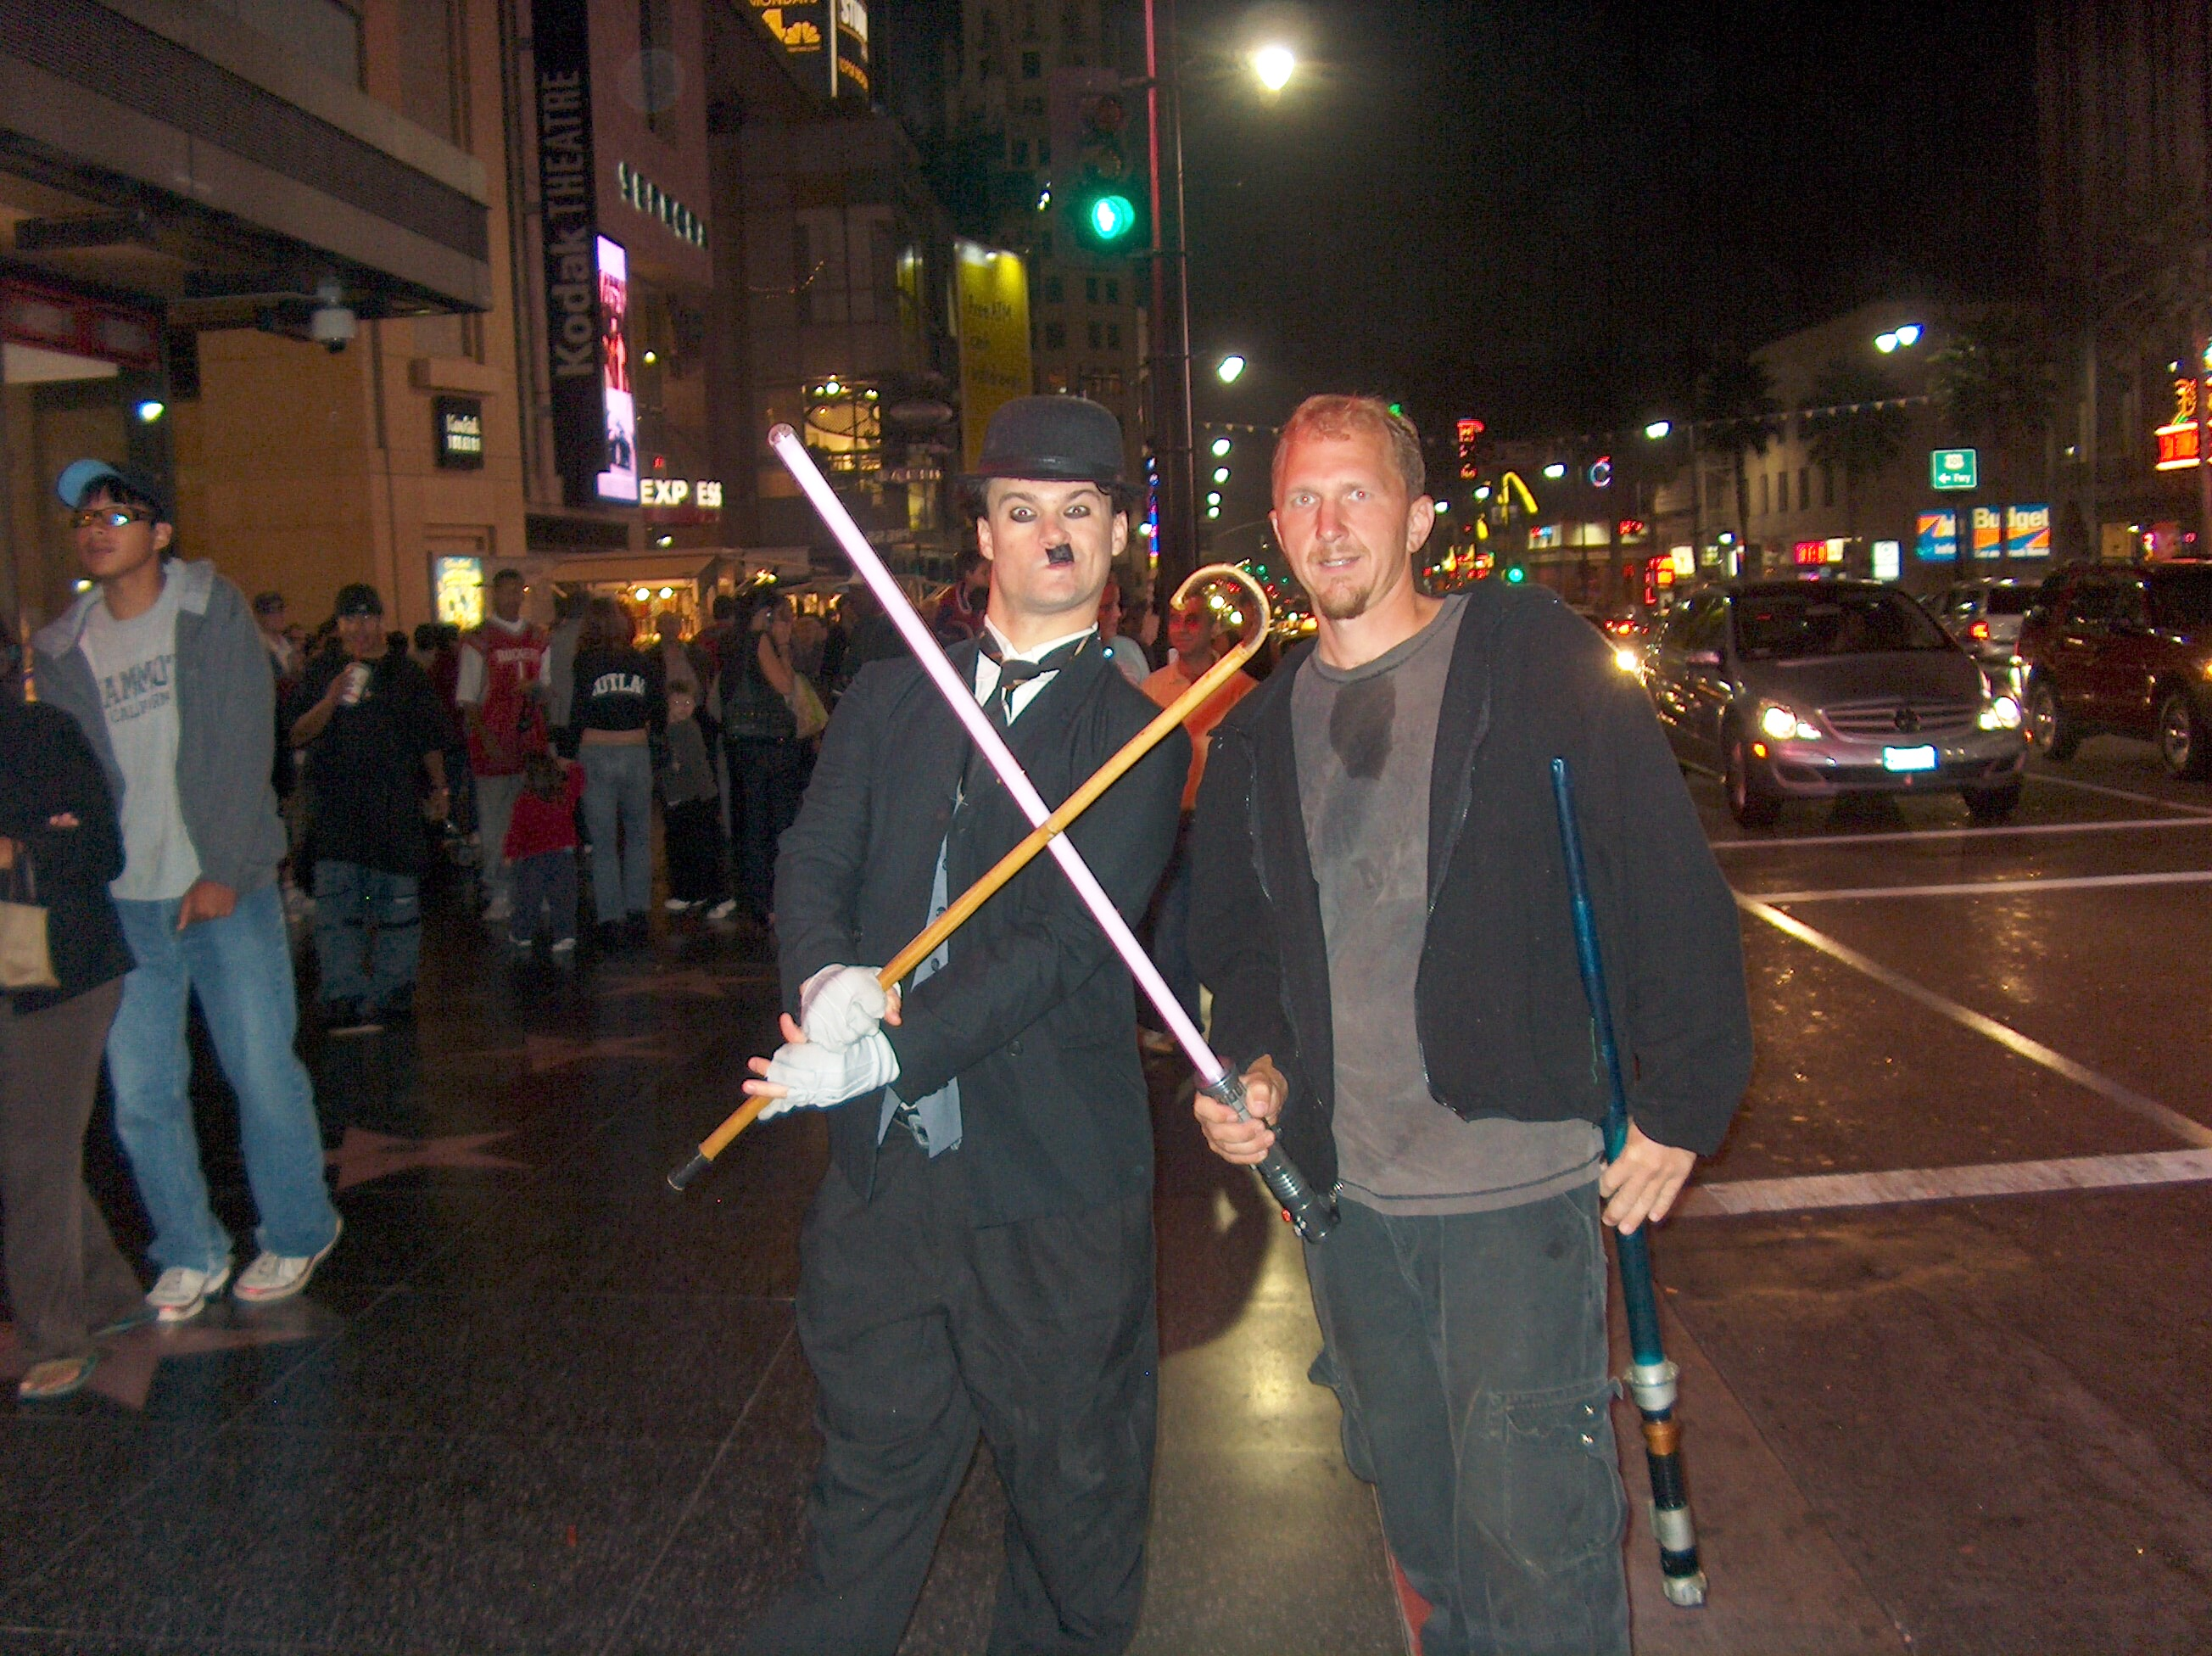 Charlie Chaplin and Abe R. Rated on Hollywood Blvd.